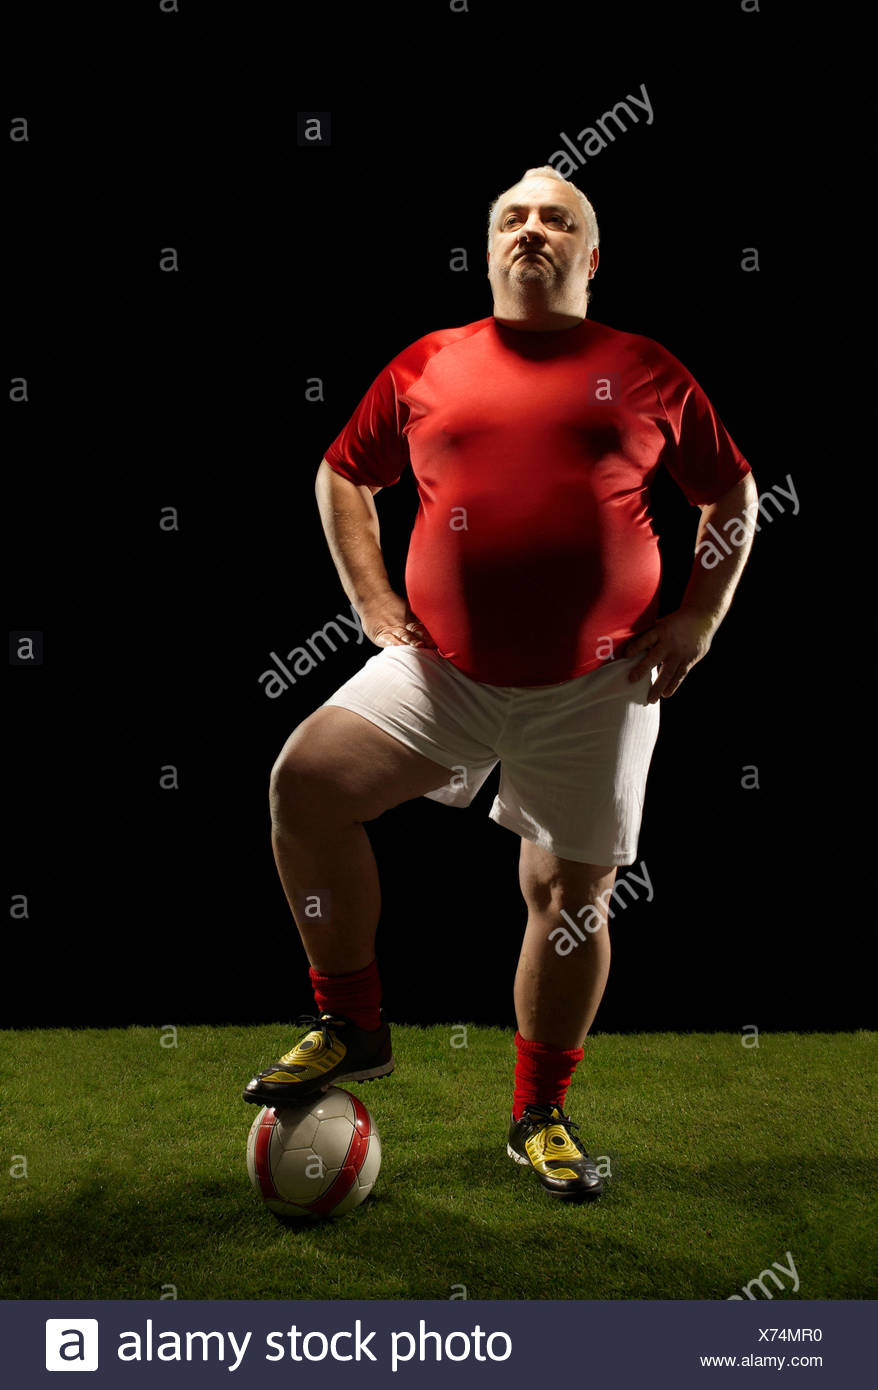 Large sportsman with foot on football - Stock Image